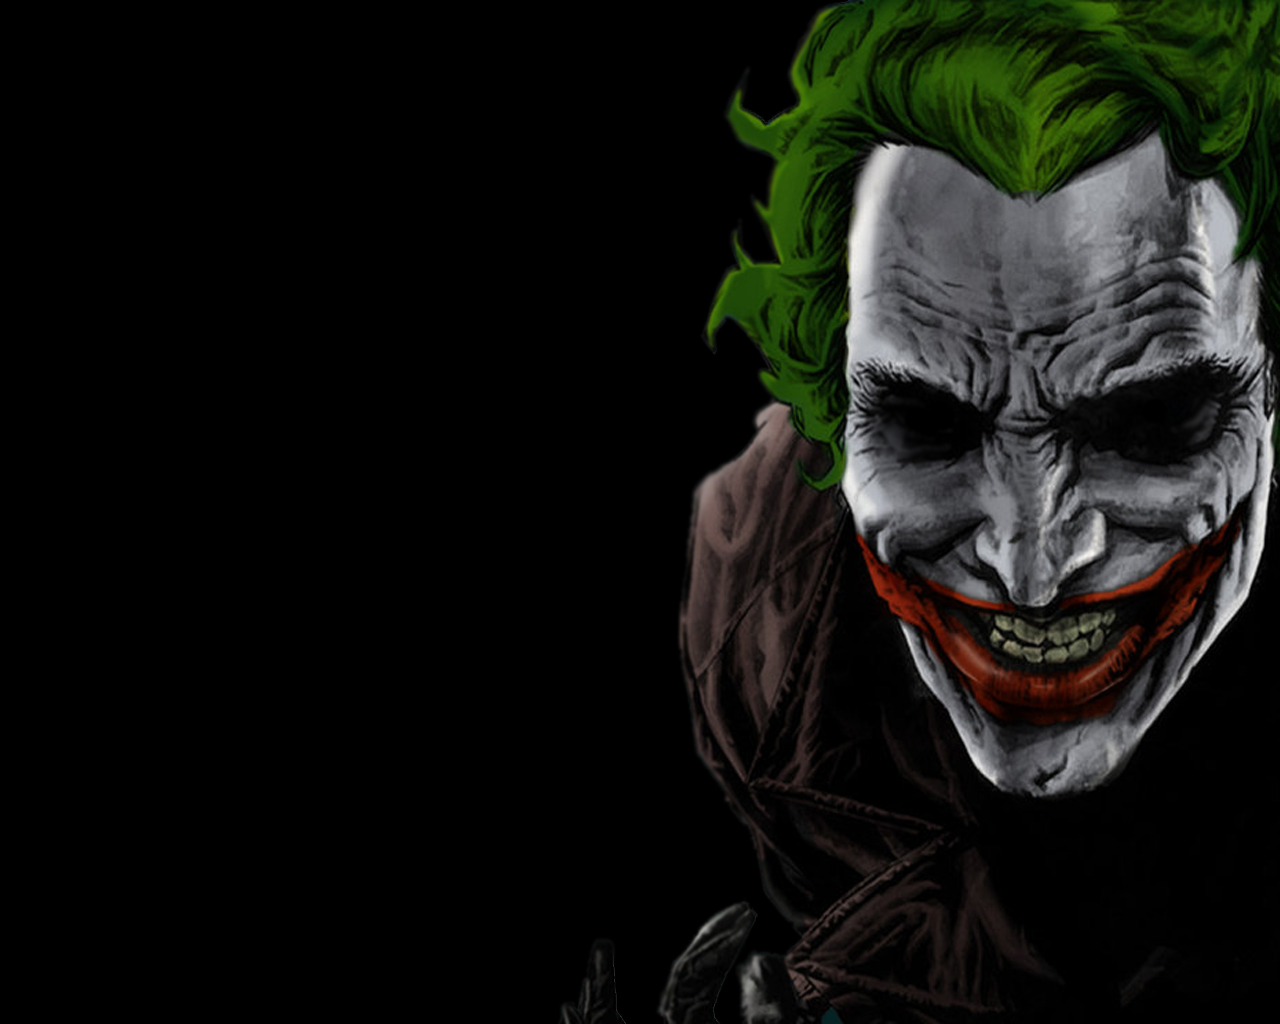 Download the joker animated wallpaper gallery - Joker brand wallpaper ...